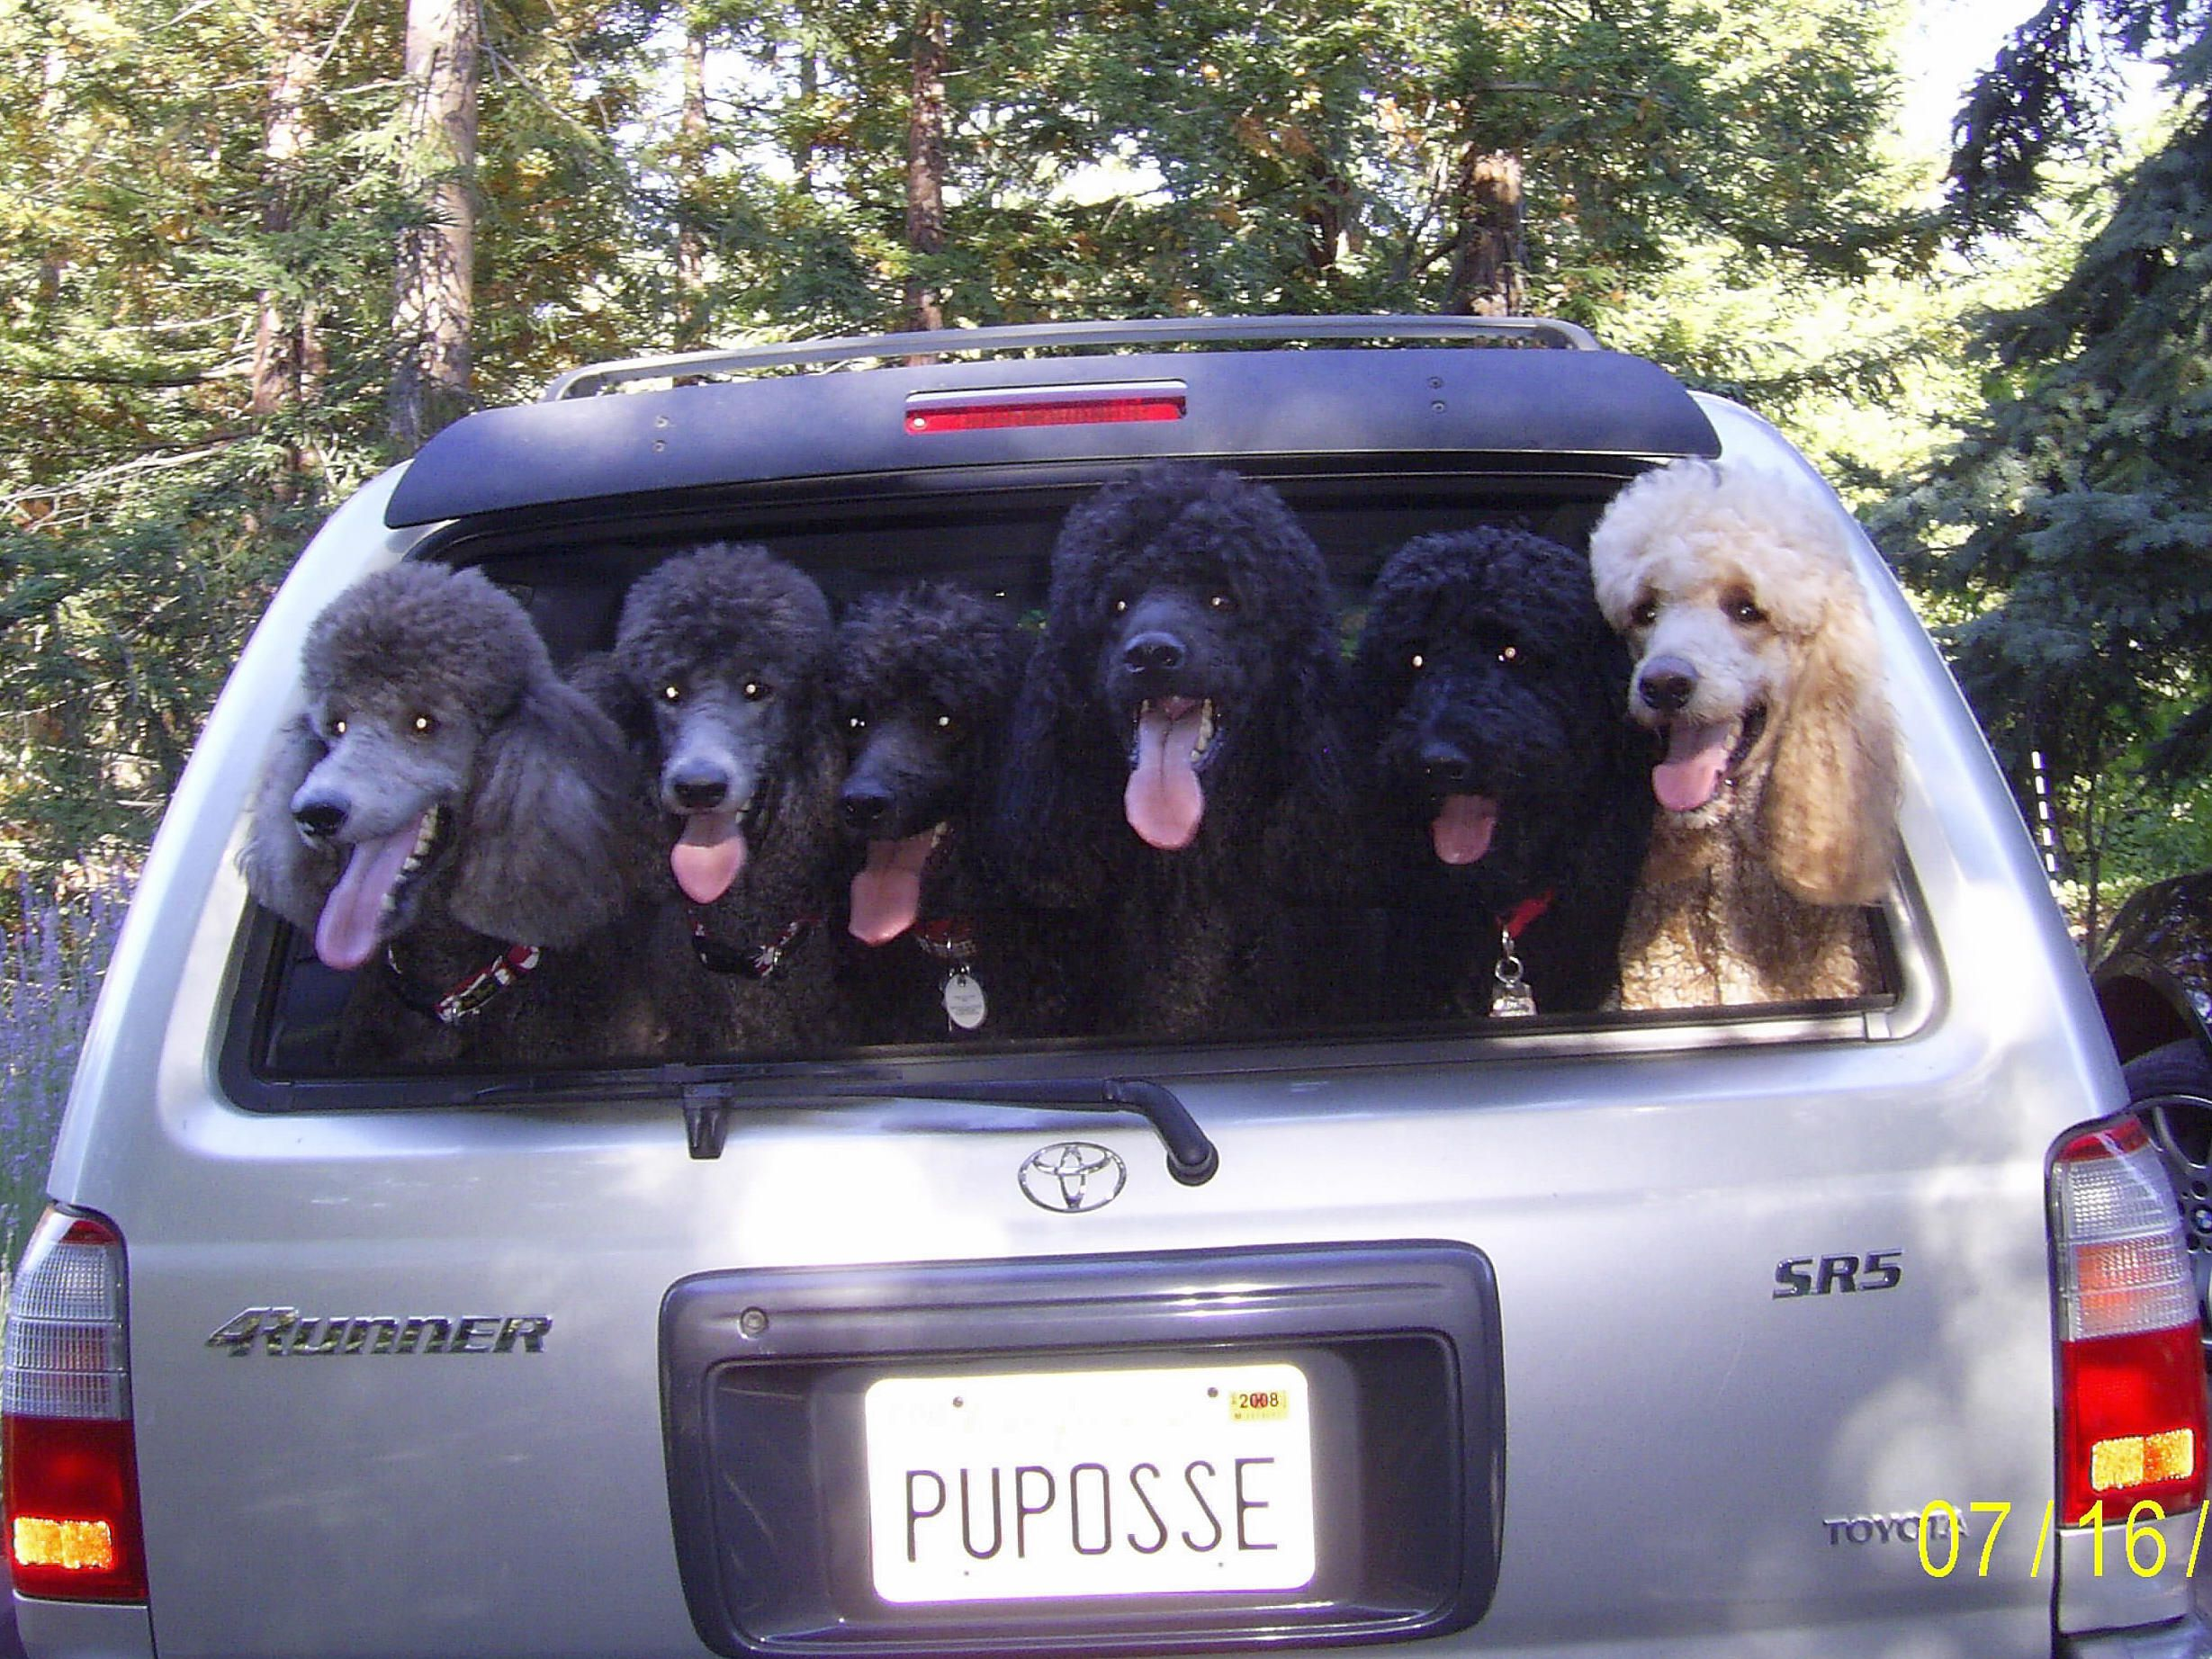 Whatus better than one poodle a car full especially when itus